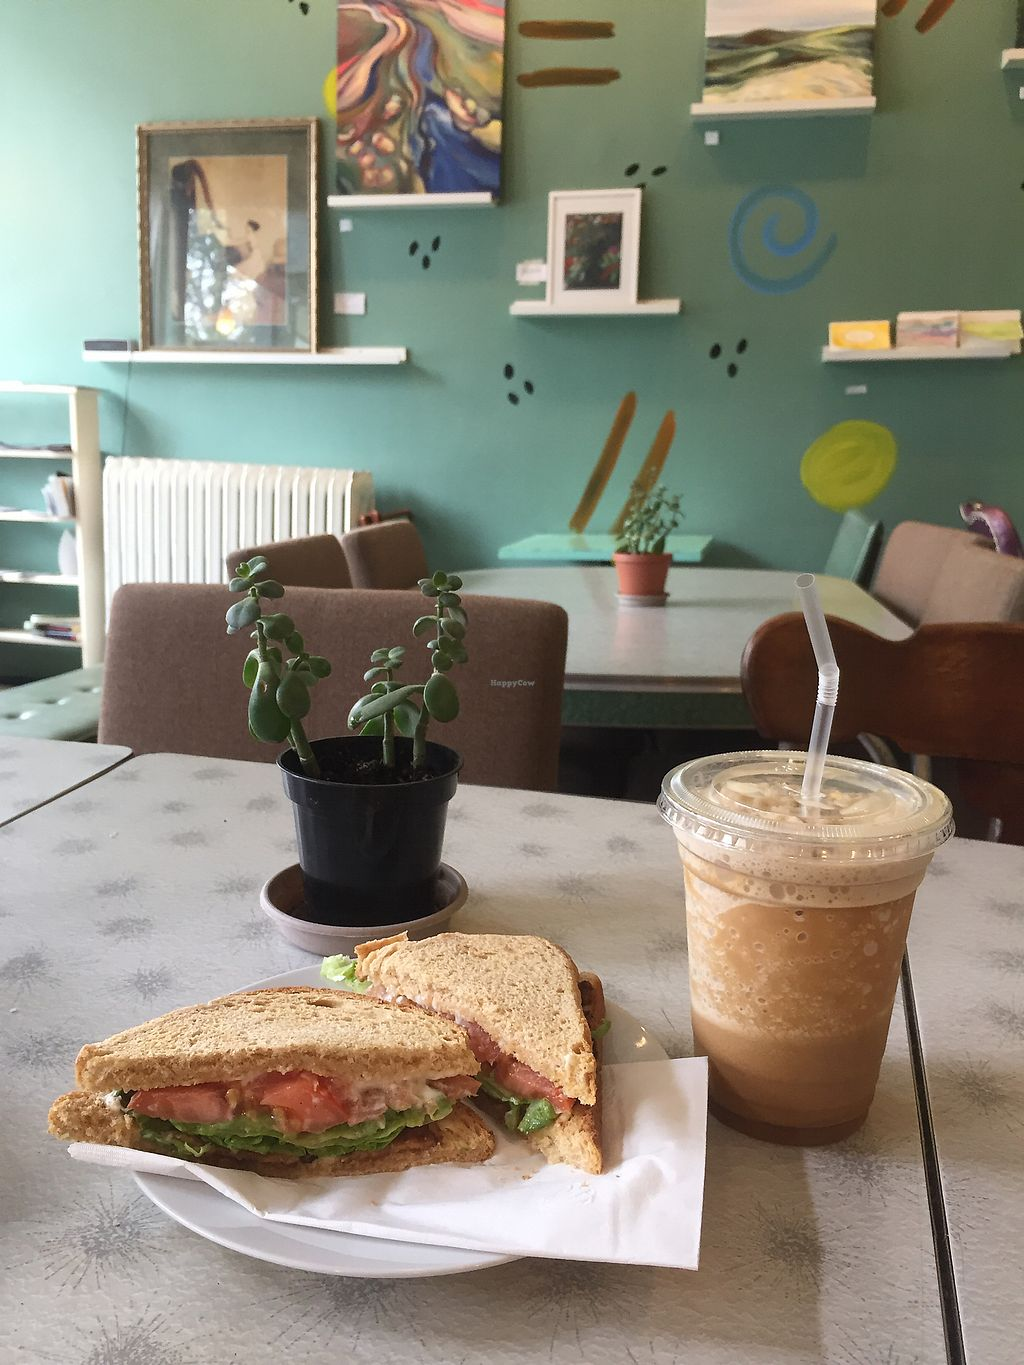 """Photo of Delicious Cafe  by <a href=""""/members/profile/happycowgirl"""">happycowgirl</a> <br/>Vegan BLT with avocado. Vegan coconut milk and coffee frappe.  <br/> August 4, 2017  - <a href='/contact/abuse/image/17202/288749'>Report</a>"""